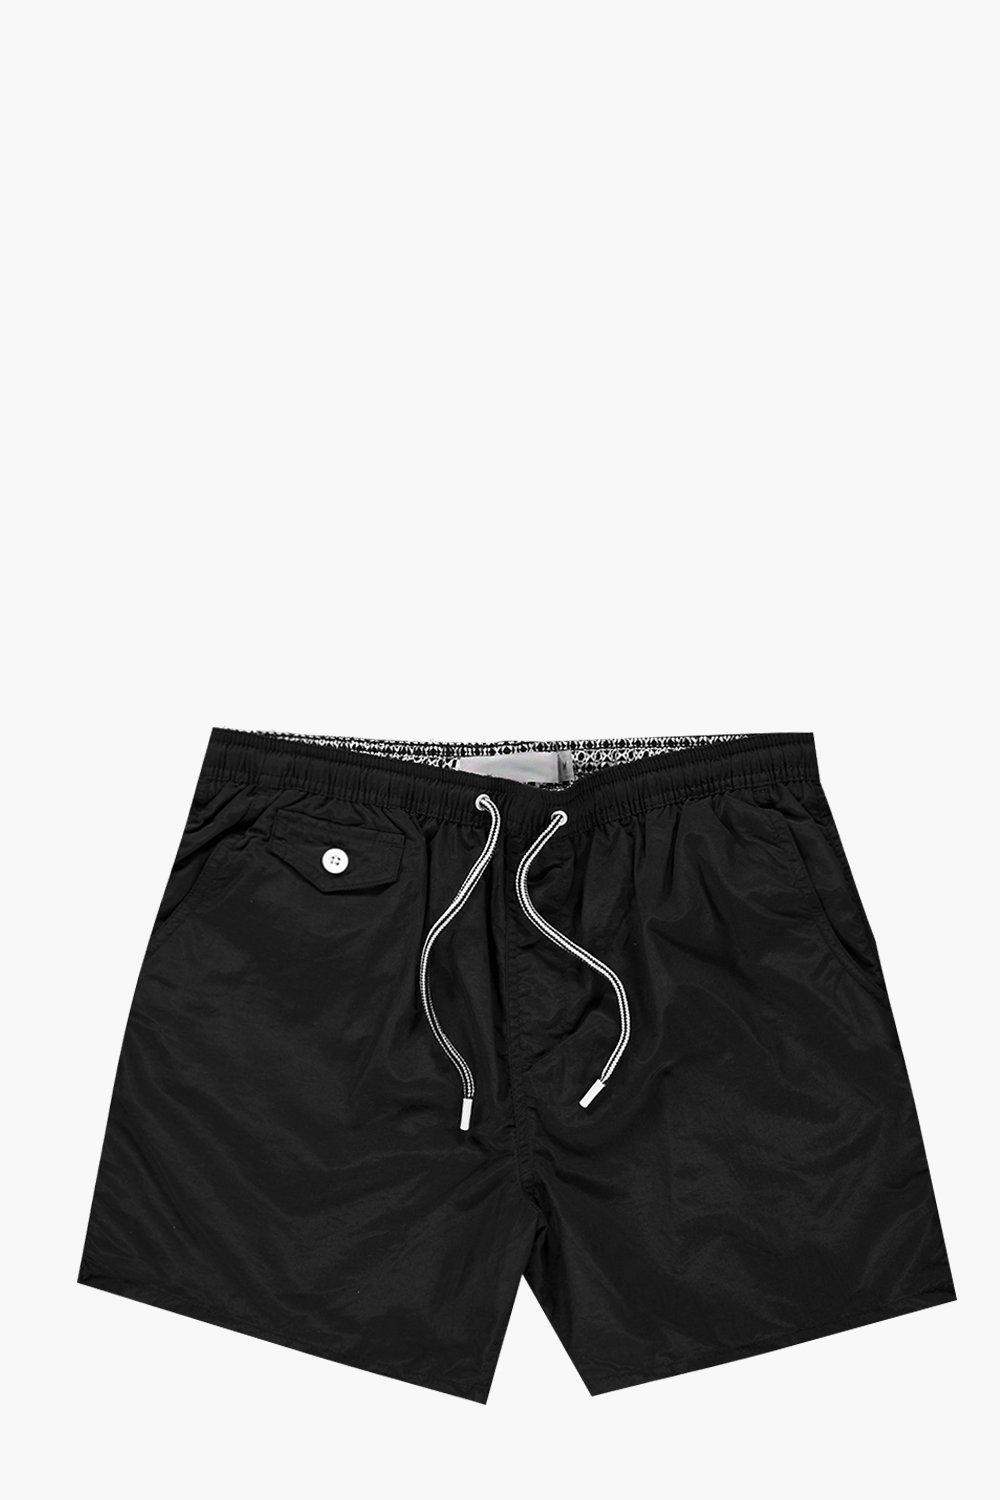 Mid Length Drawstring Swim Short